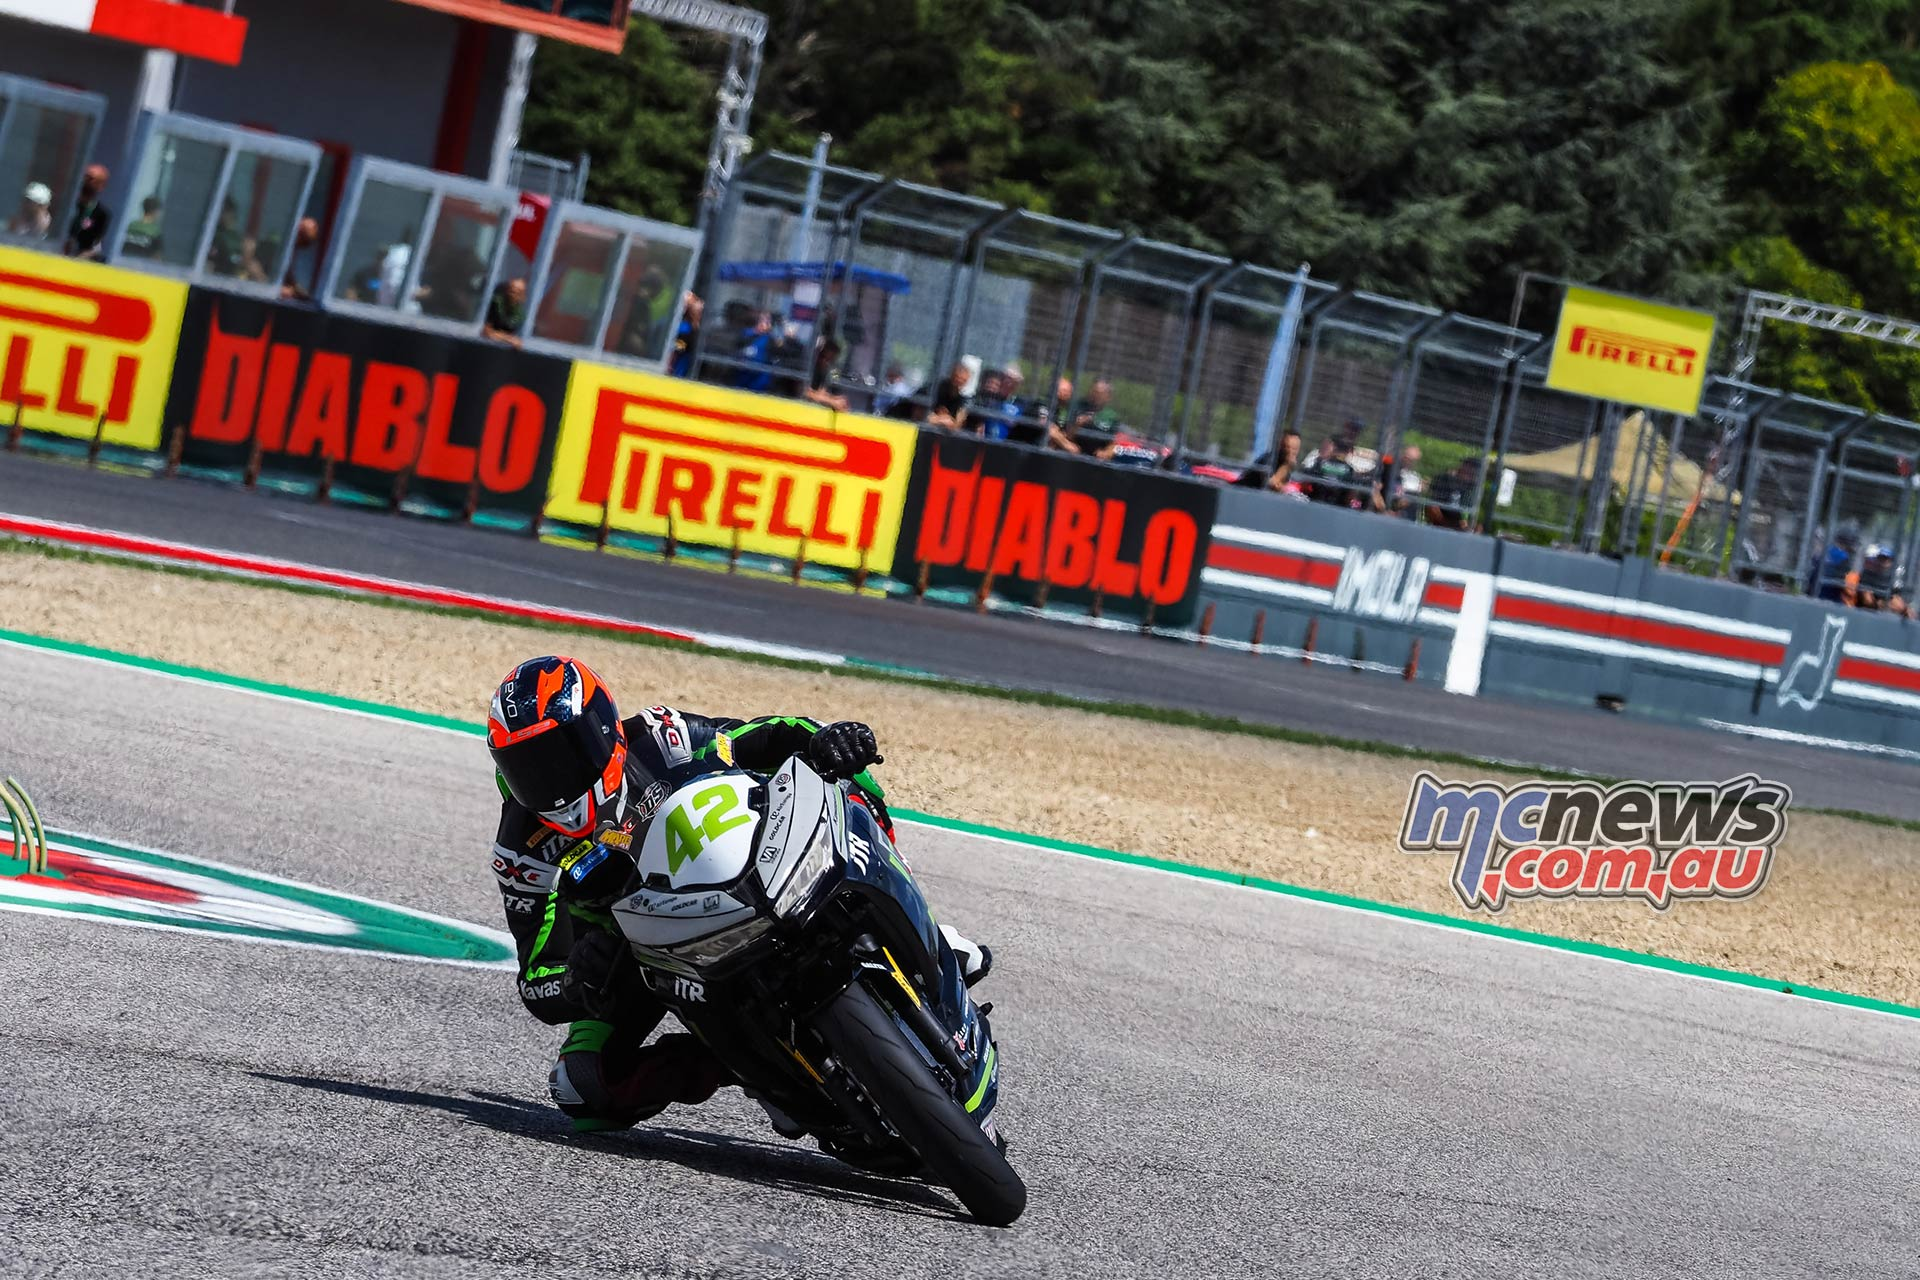 WSBK Rnd Imola Friday WorldSSP Friday Action Garcia